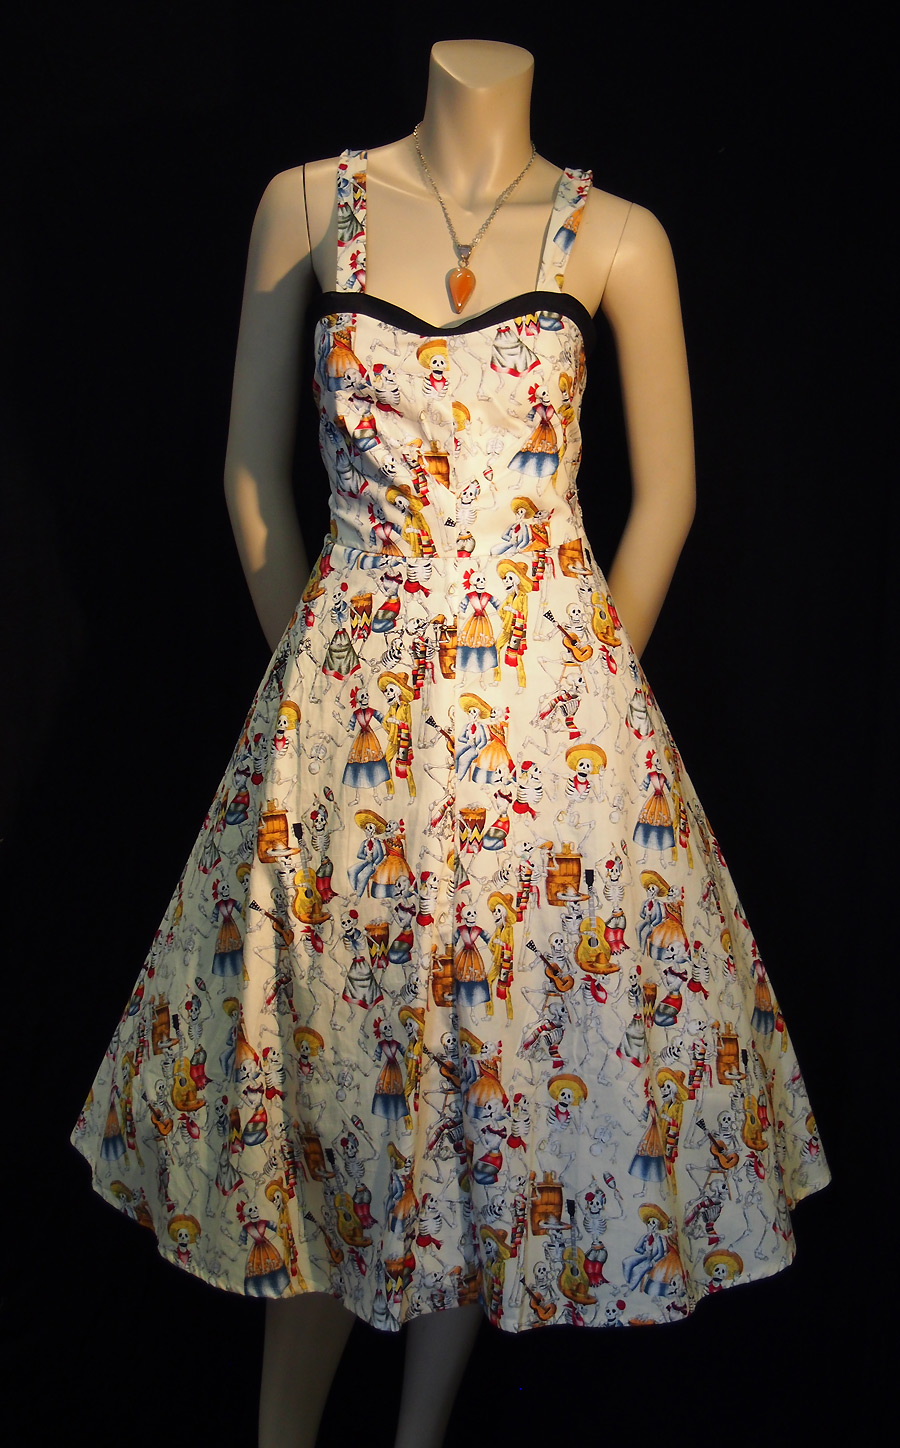 Rockabilly The Day of the Dead strap dress - cream